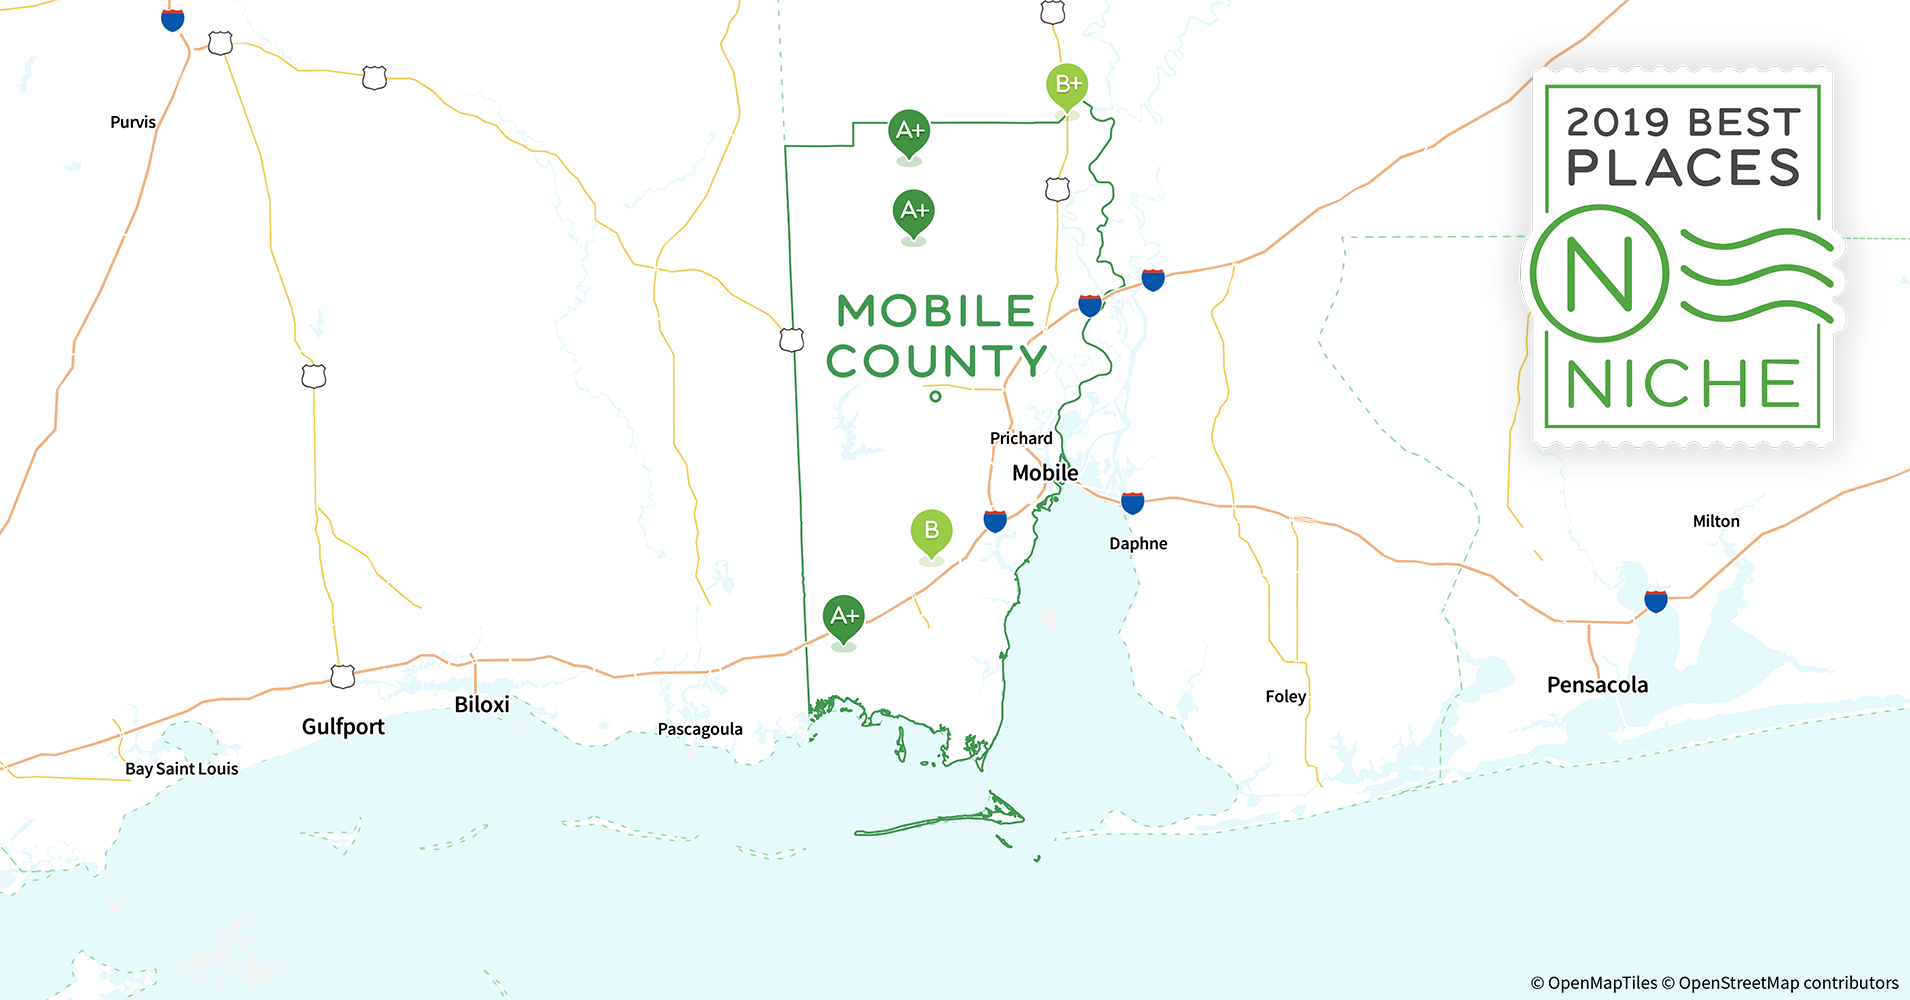 2019 Best Places to Live in Mobile County, AL - Niche